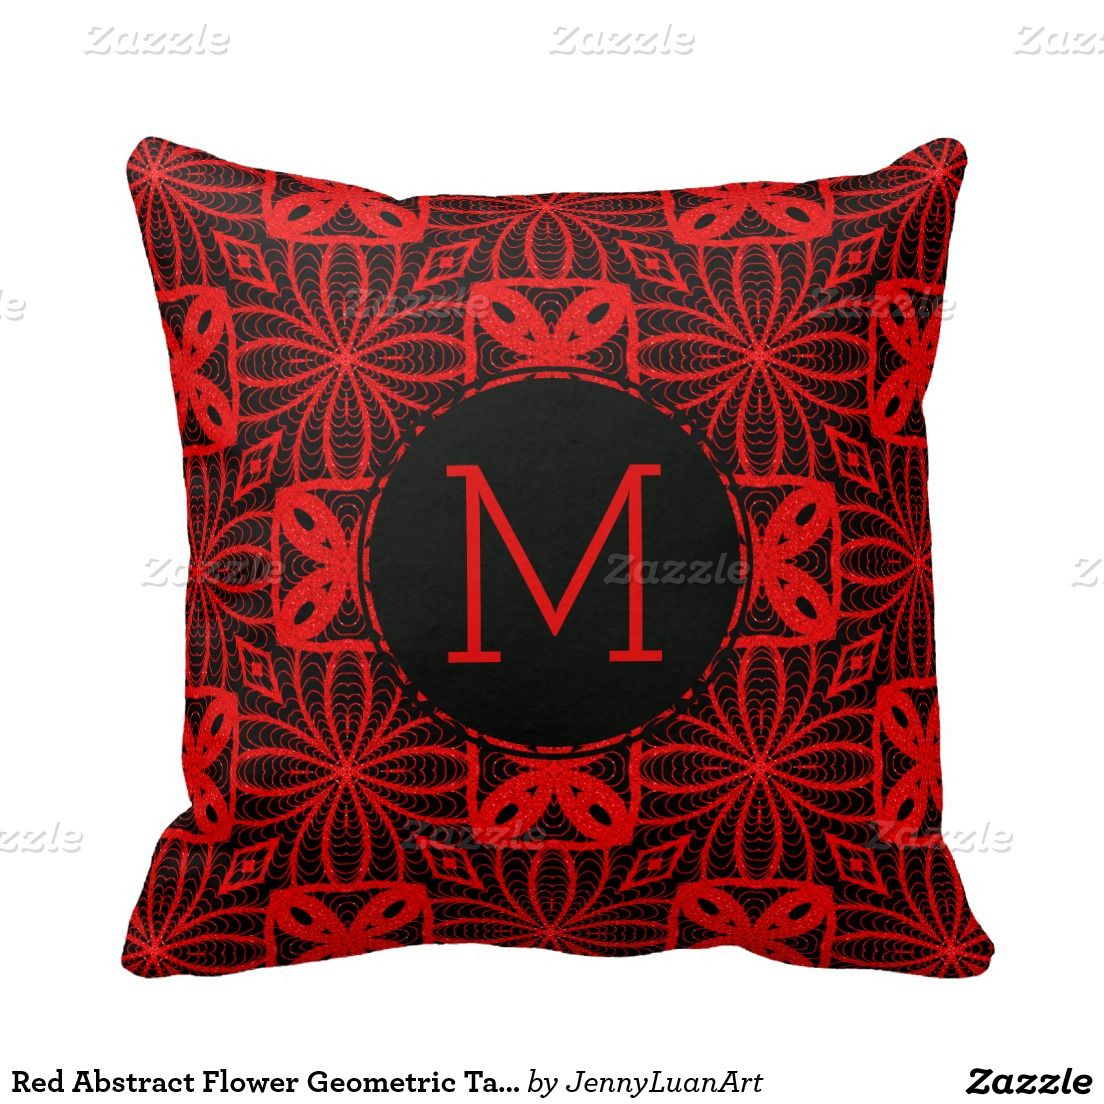 Red Abstract Flower Geometric Tangle Pattern Throw Pillows